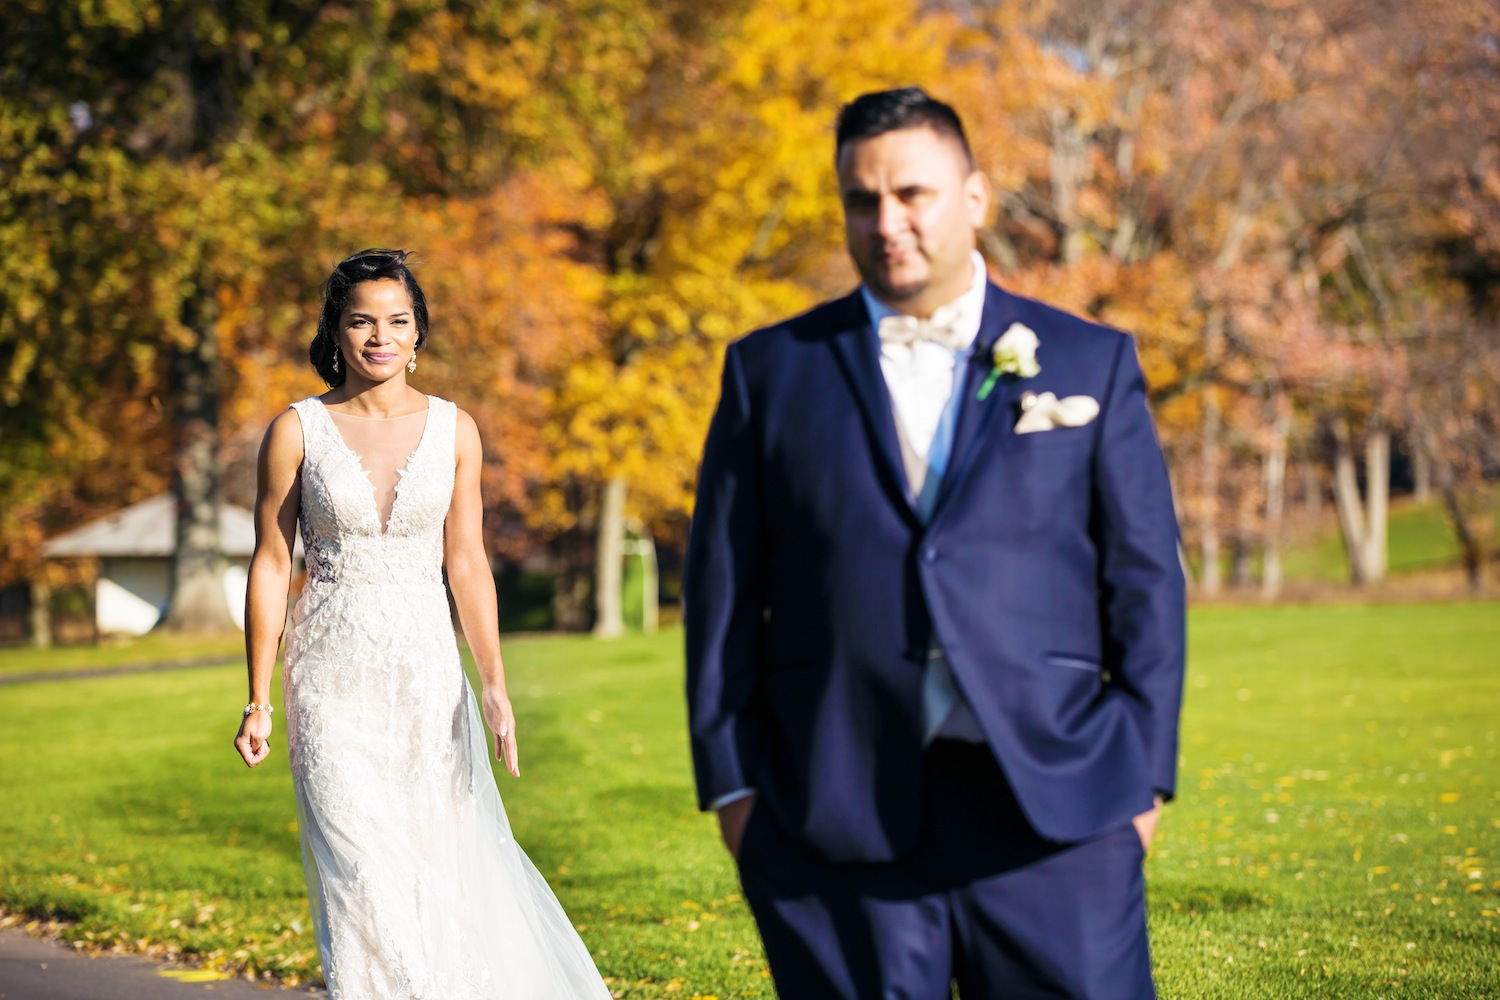 aisha-approaching-victor-for-first-look-on-wedding-day-nj-photography